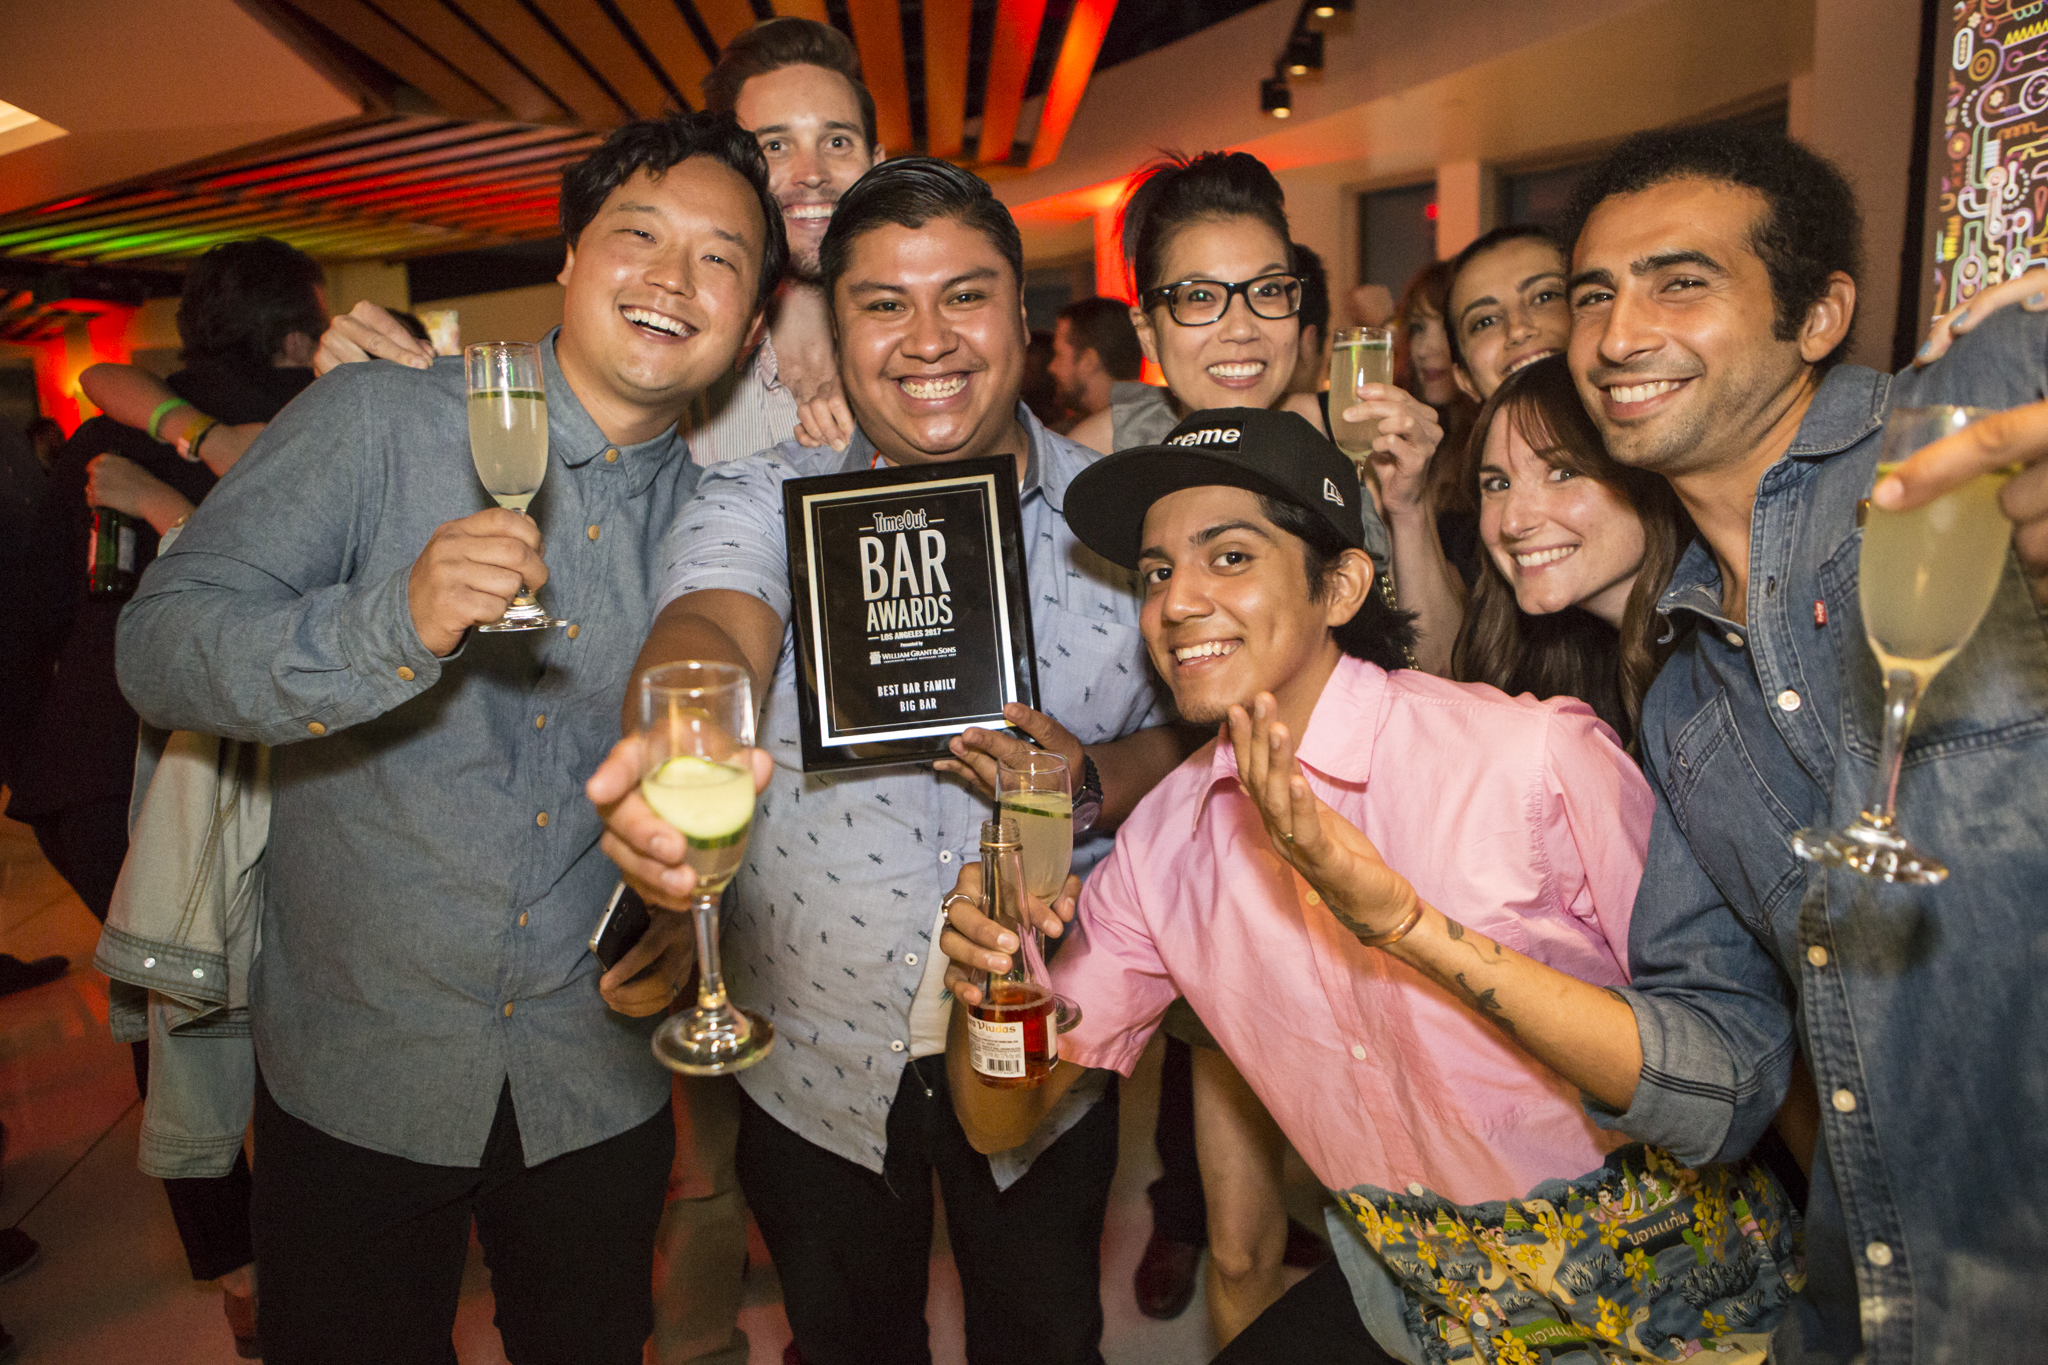 Our Bar Awards recap